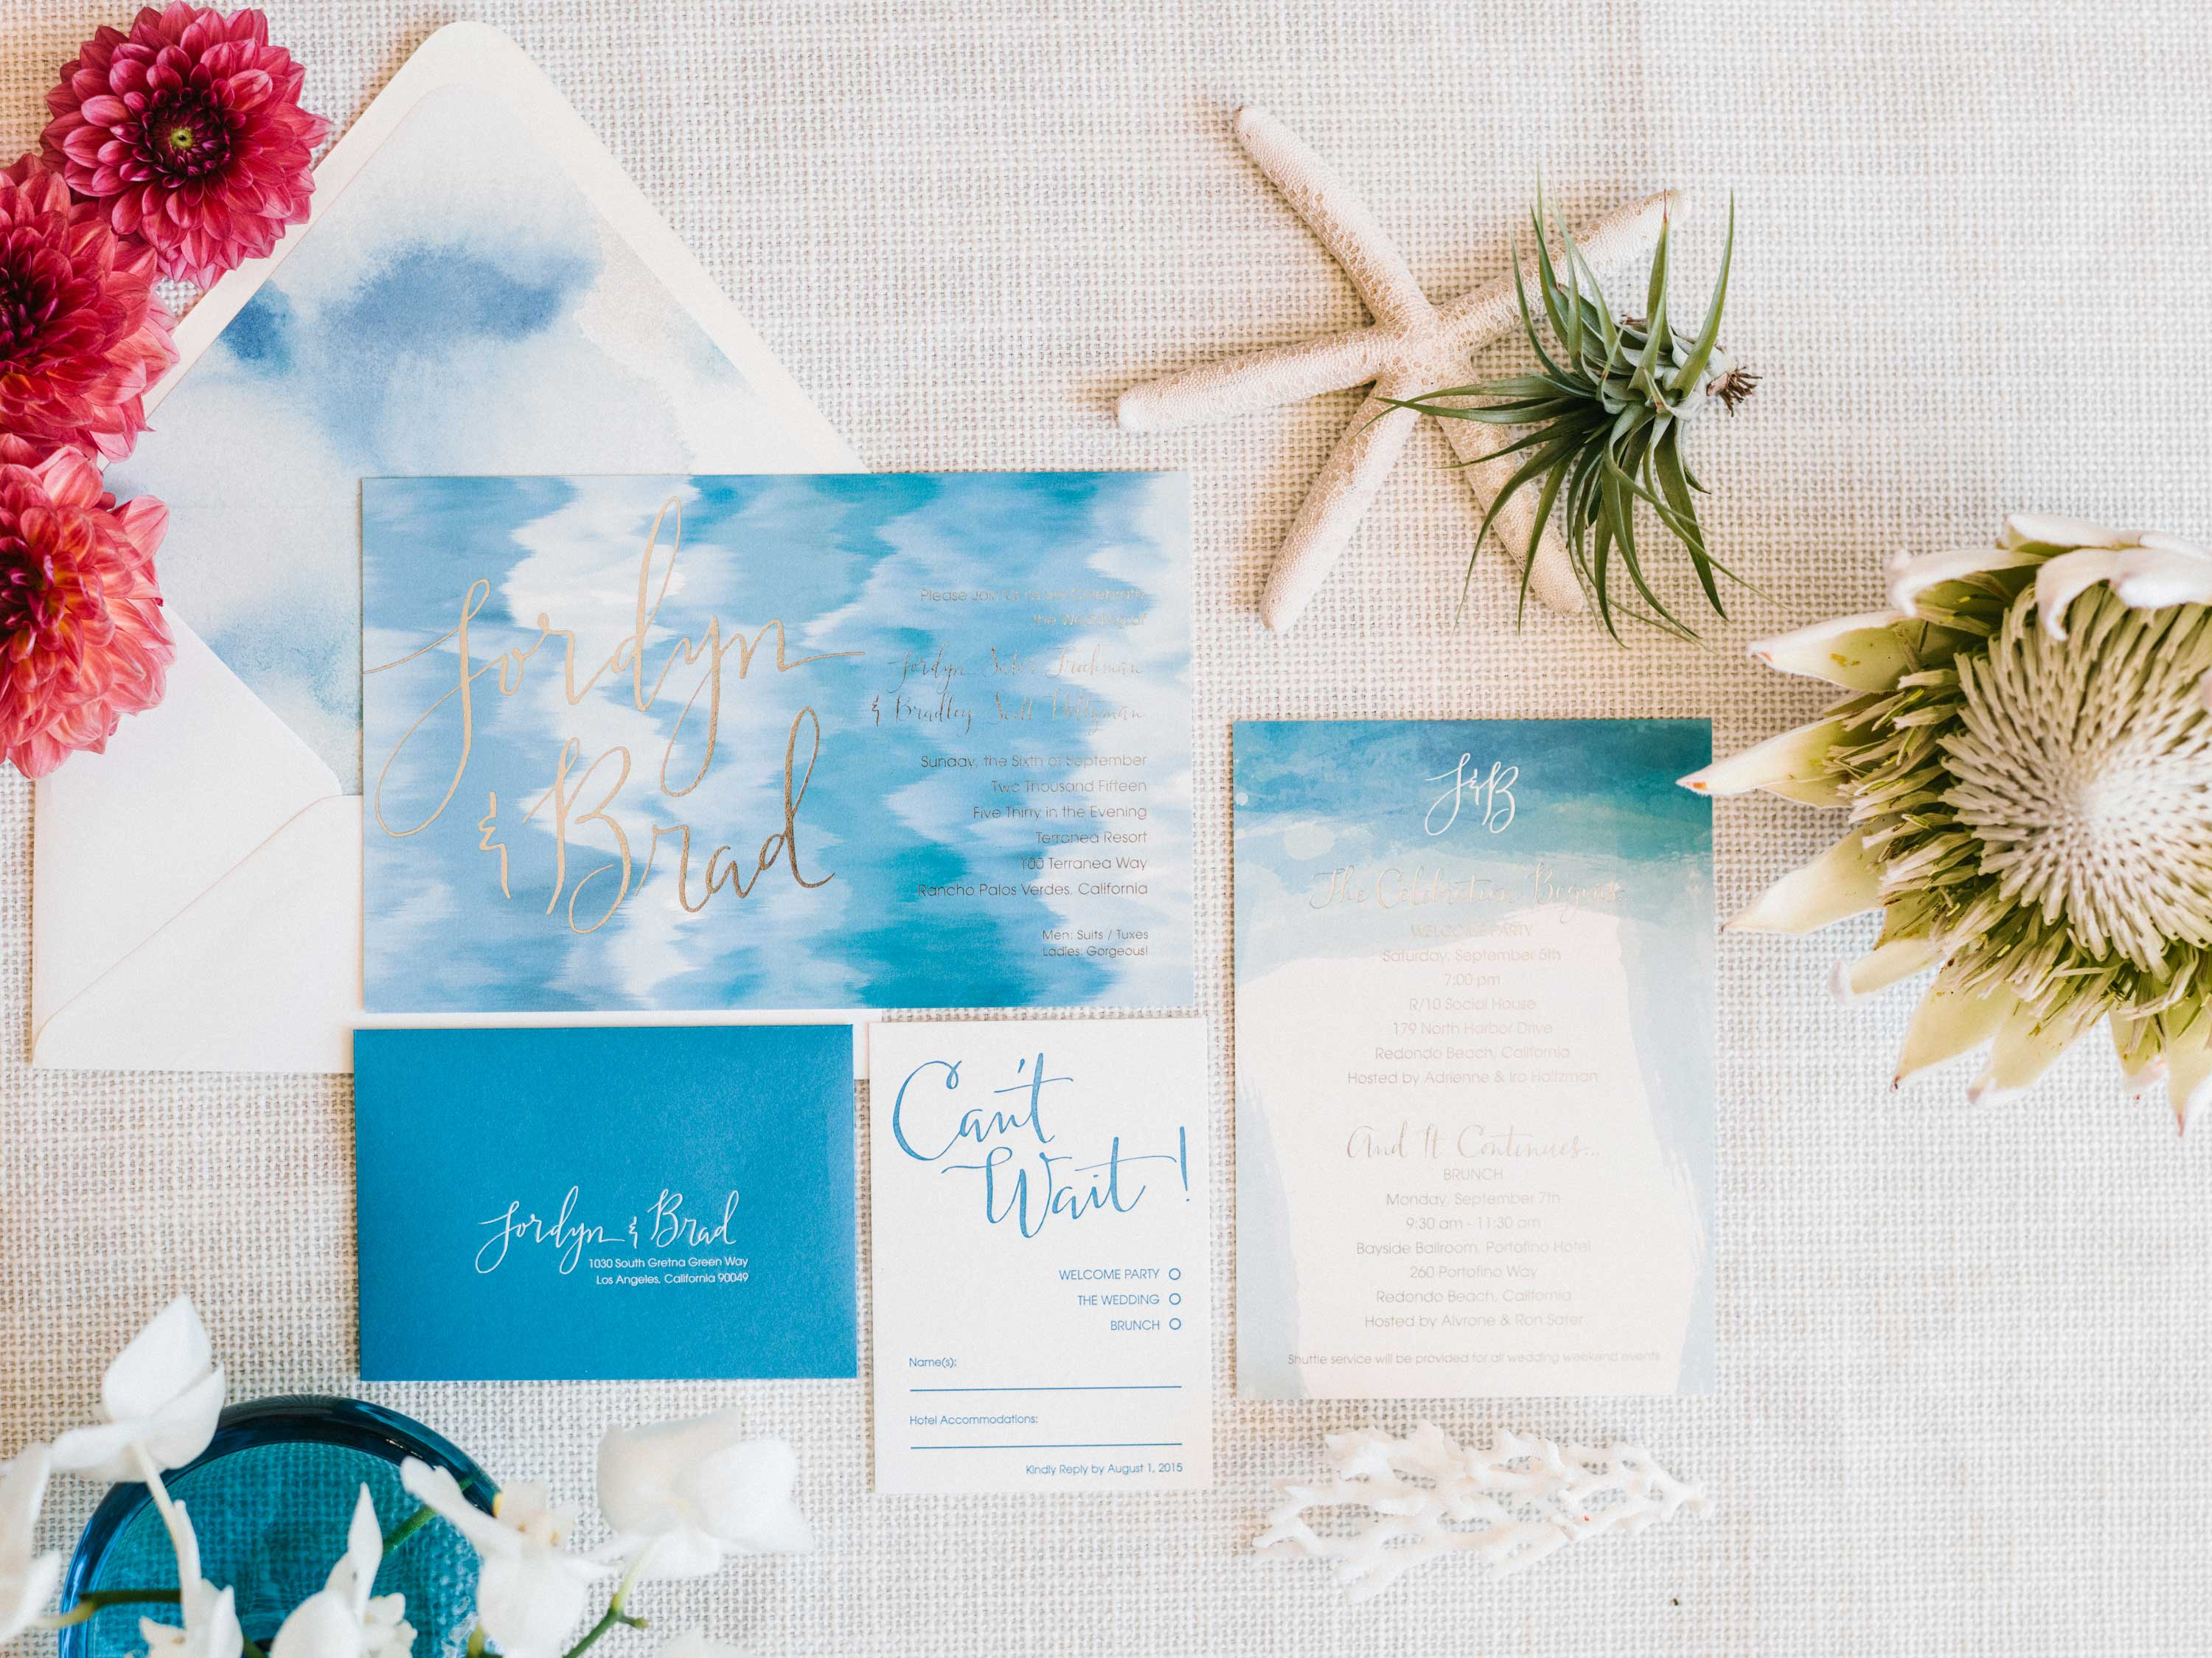 Light blue watercolor invitation spring 2016 Inside Weddings magazine